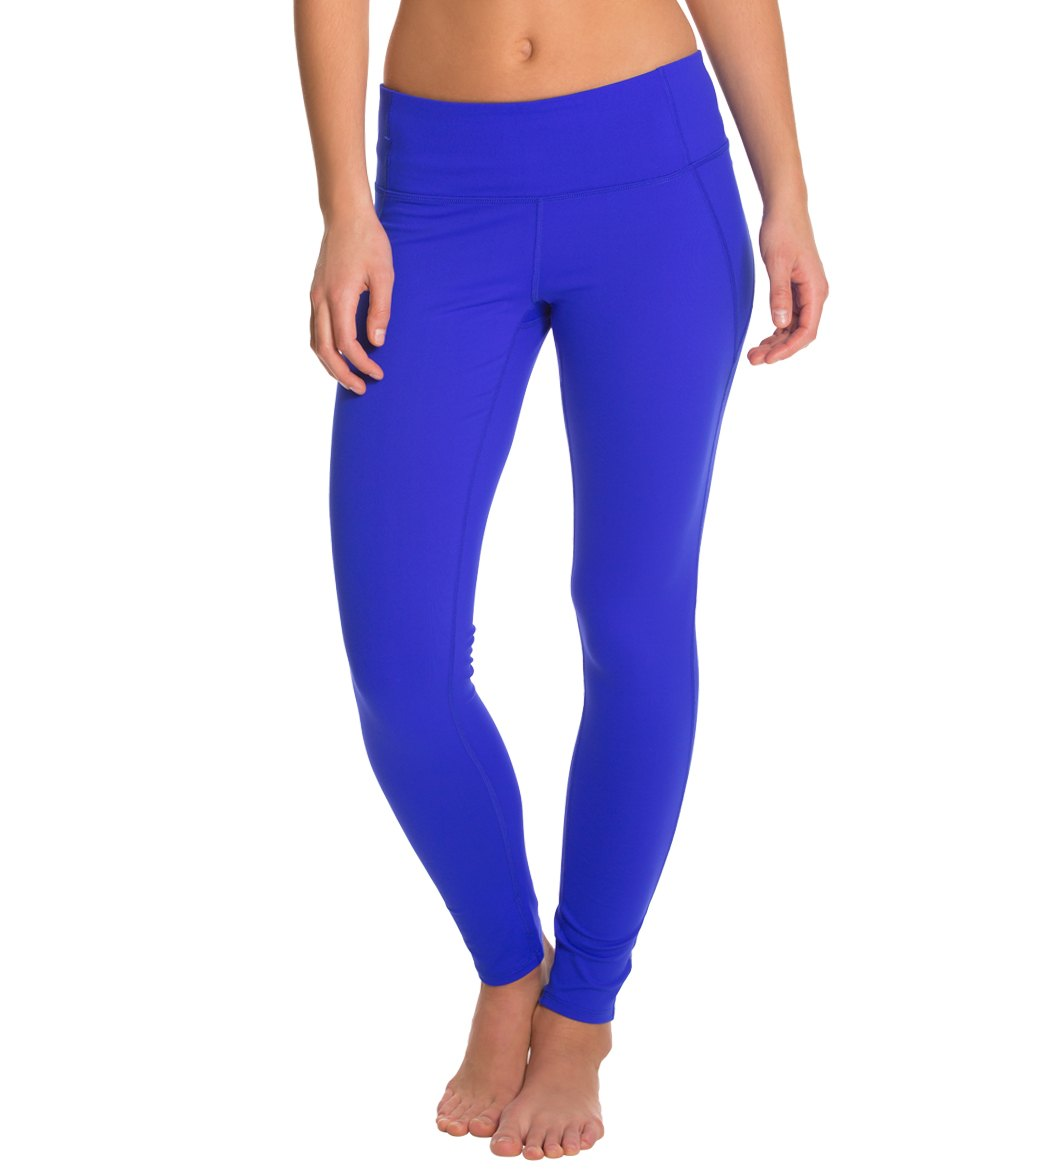 Body Glove Active Lady Long Legs Legging at SwimOutlet.com - Free Shipping b3ac640f3